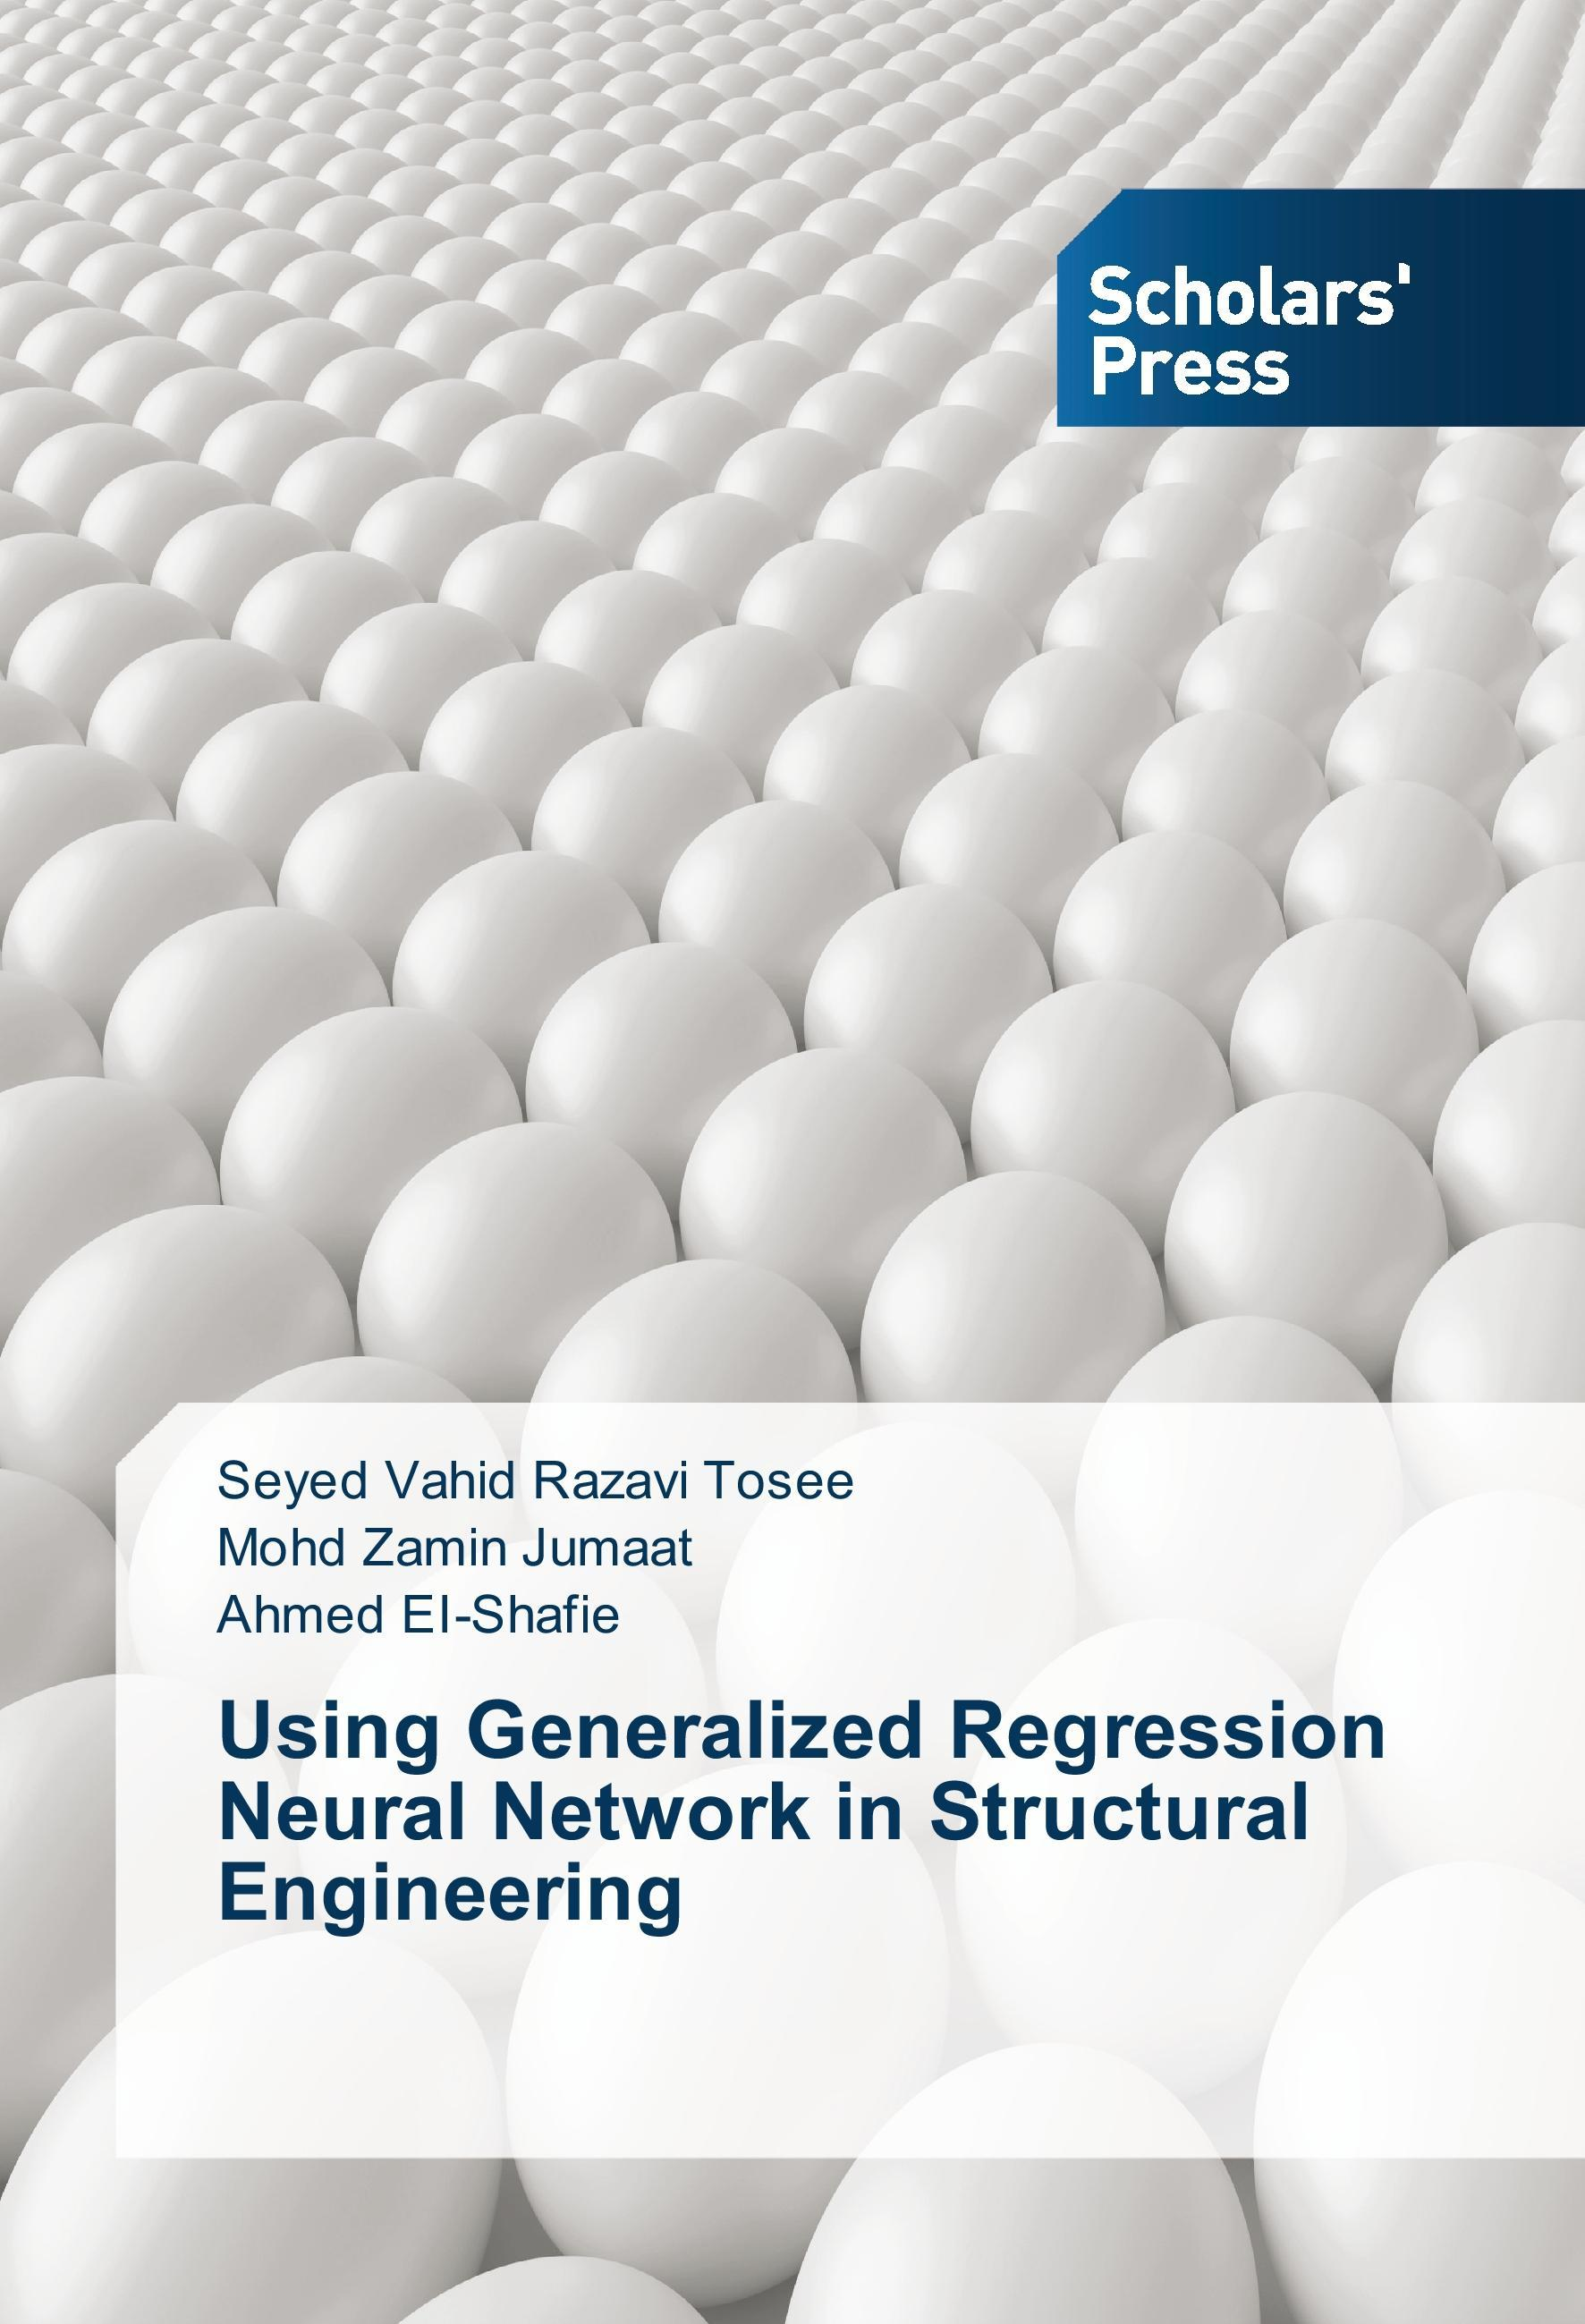 Seyed Vahid Razavi Tosee / Using Generalized Regression Neur ... 9783639661255